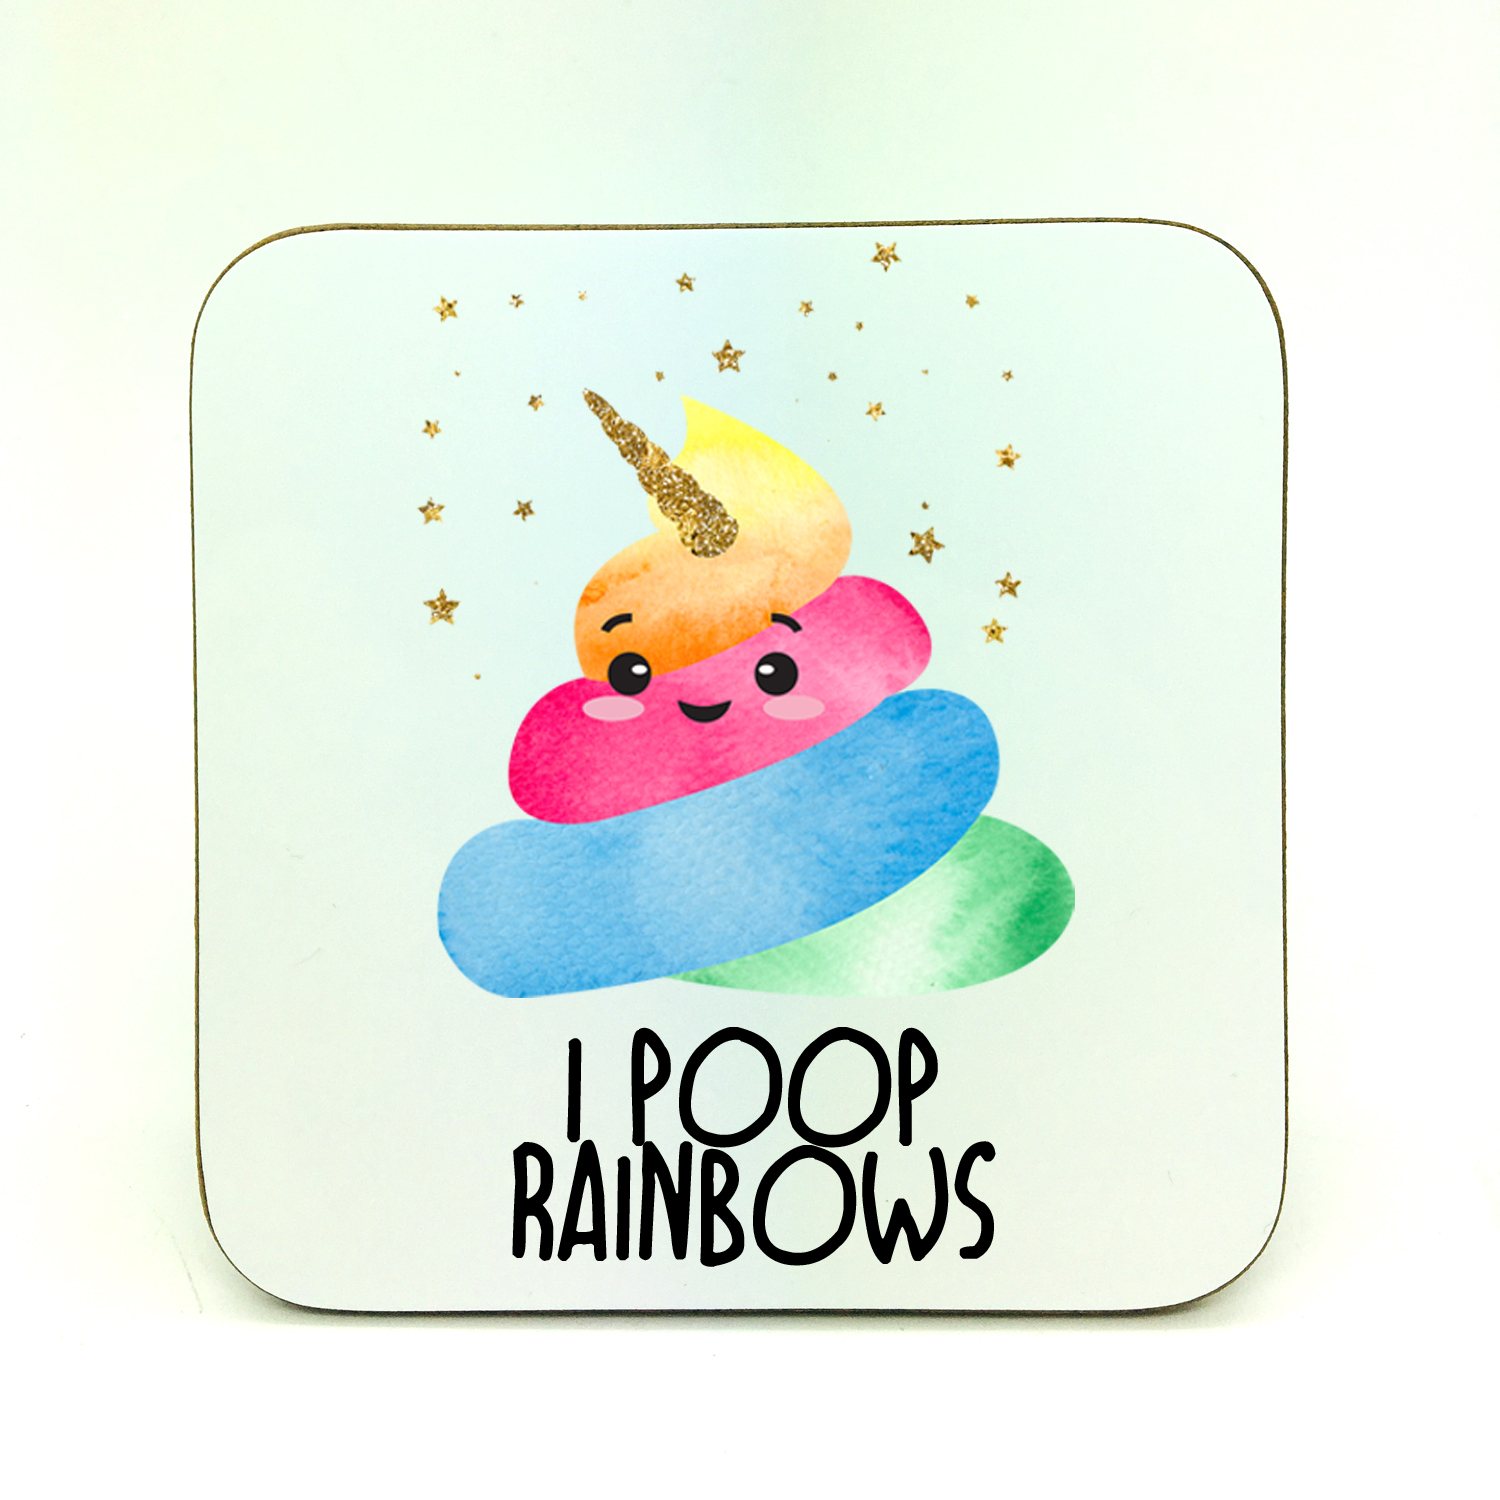 poop rainbows coaster by Beautifully Obscene